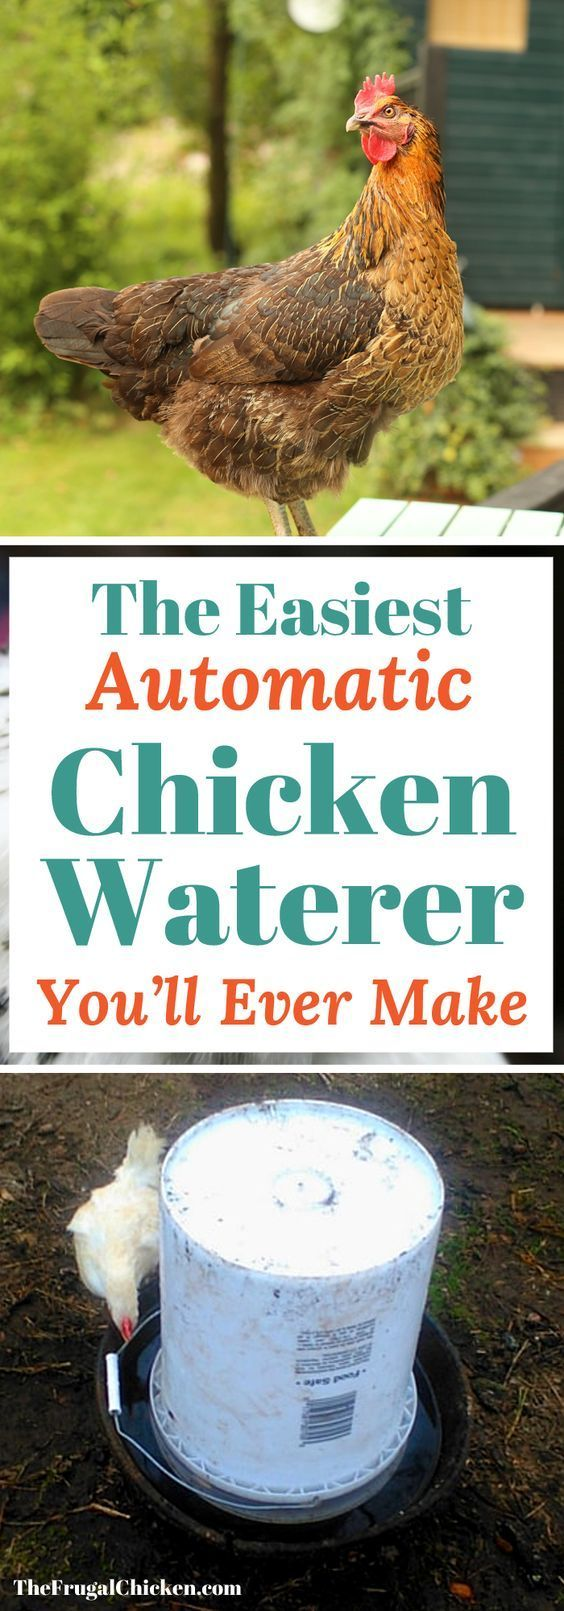 Easiest DIY Automatic Chicken Waterer You'll Ever Make ...